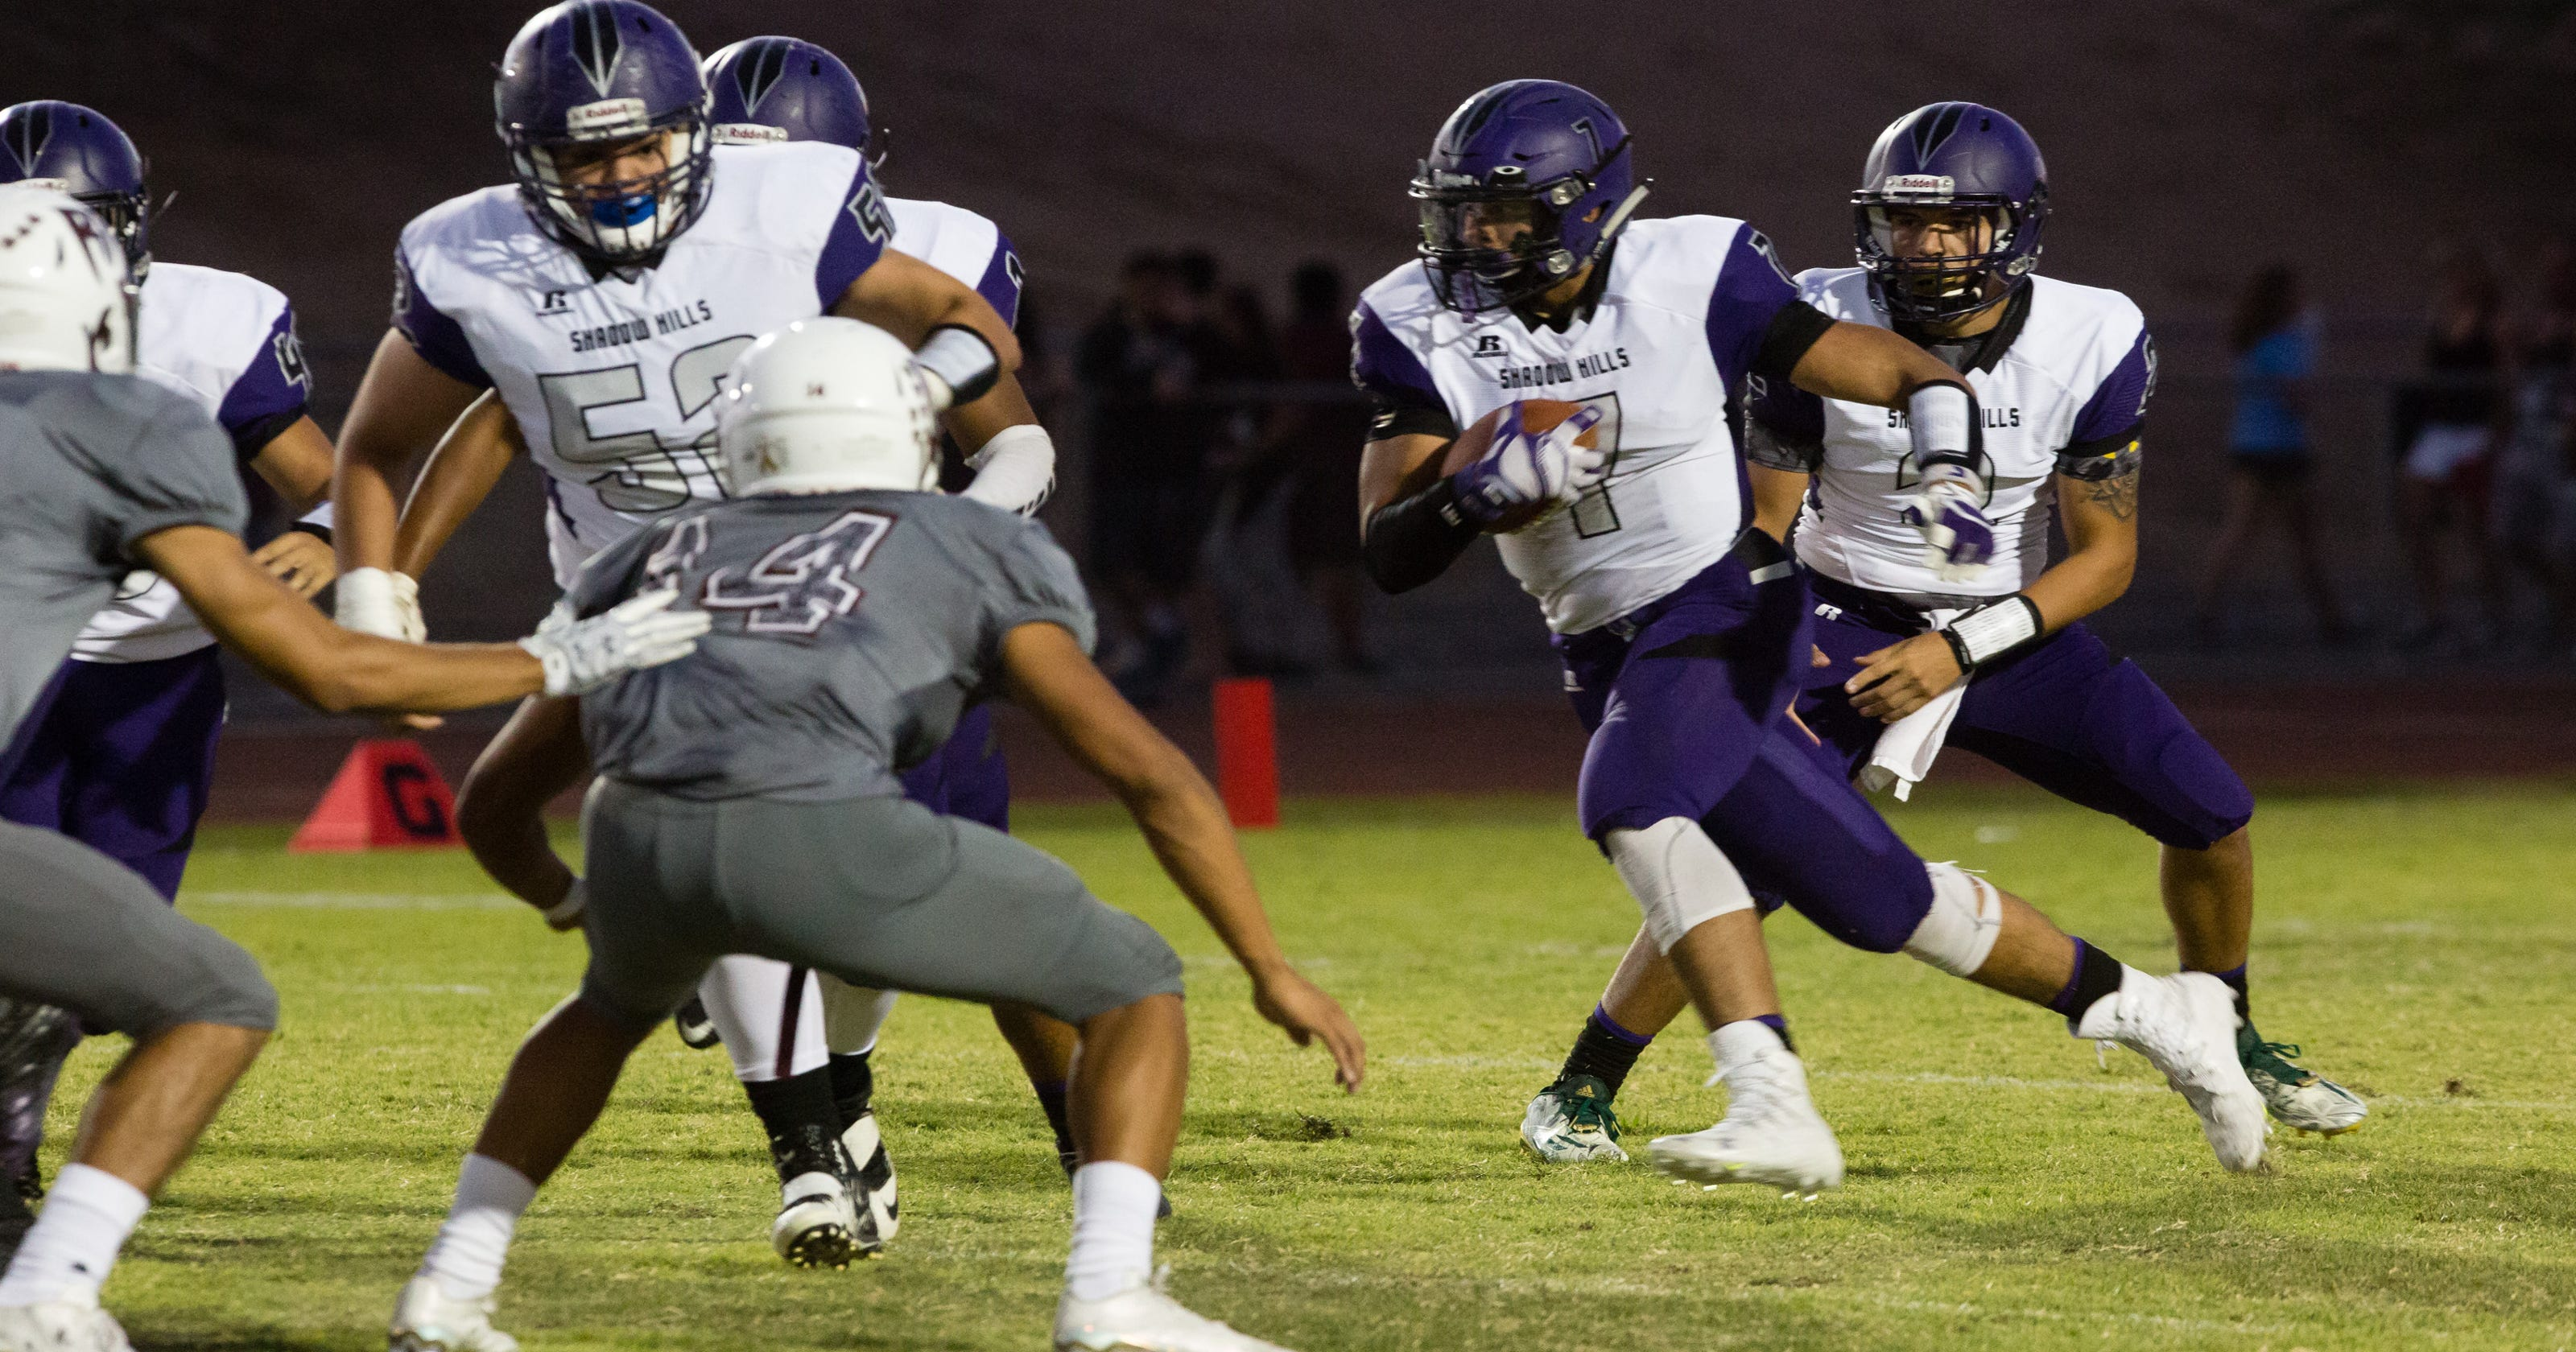 Injury doesn't prevent Shadow Hills football star from